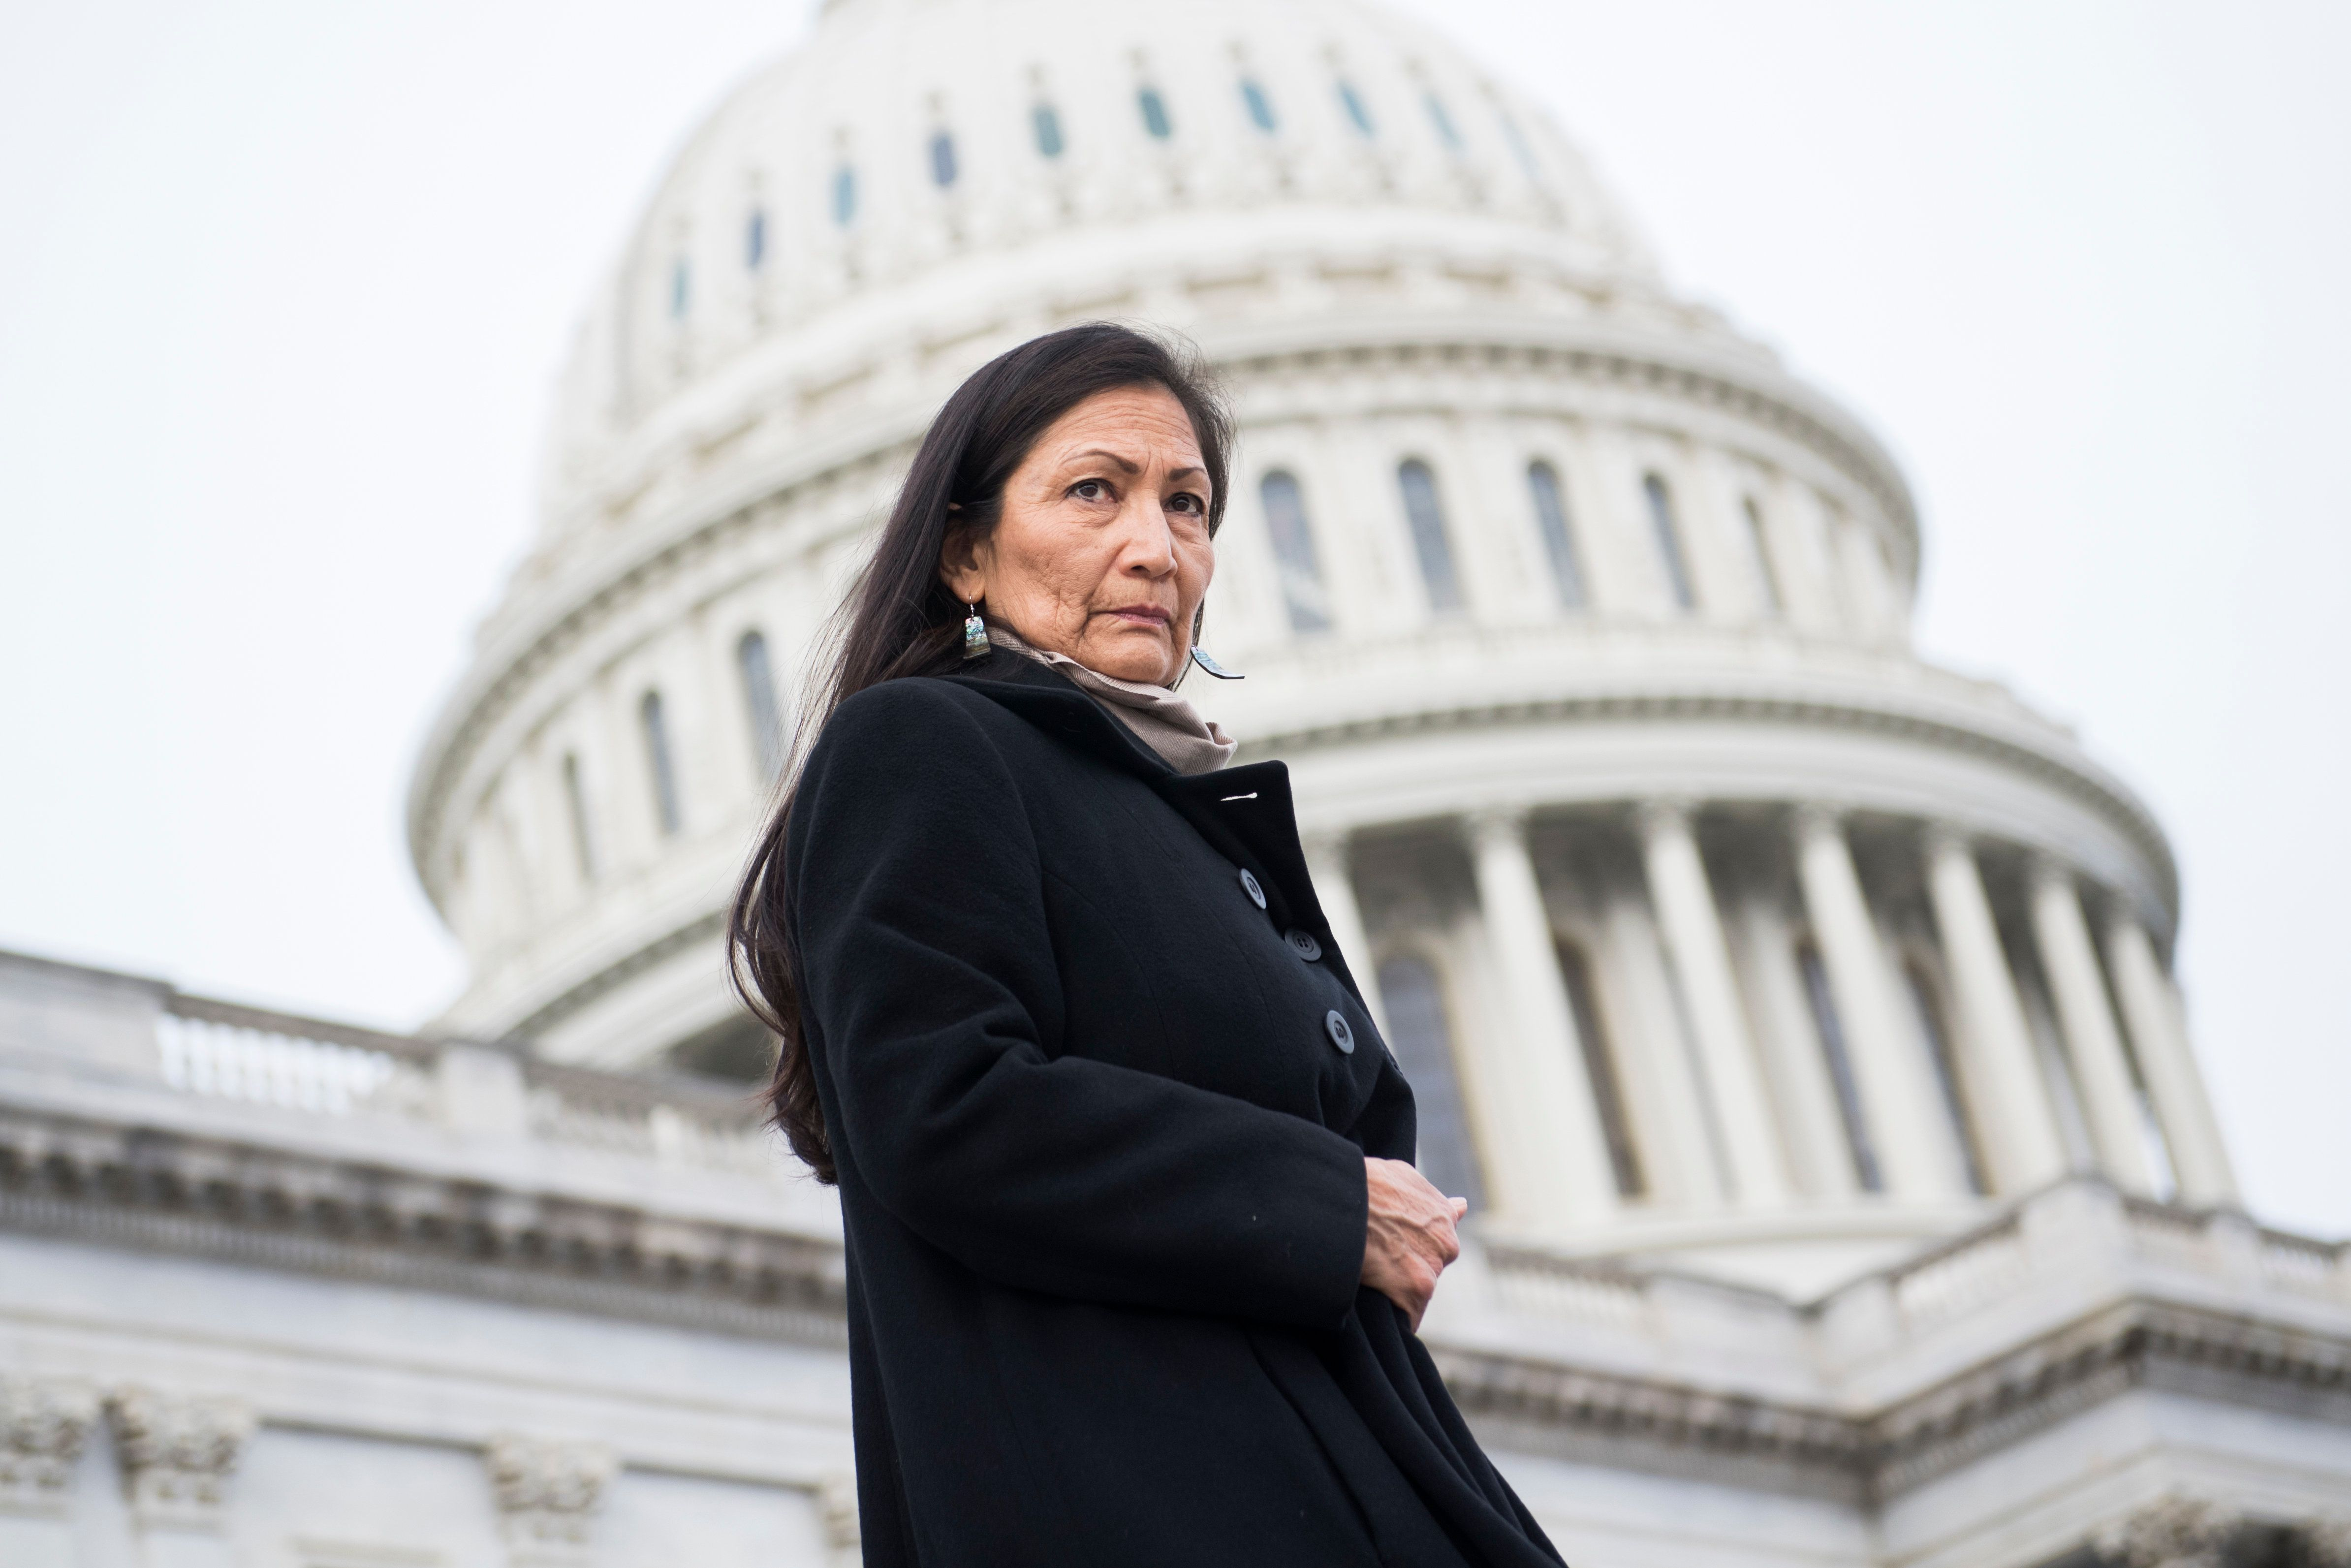 UNITED STATES - JANUARY 04: Rep. Deb Haaland, D-N.M., makes her way to a group photo with Democratic women members of the House on the East Front of the Capitol on January 4, 2019. (Photo By Tom Williams/CQ Roll Call)